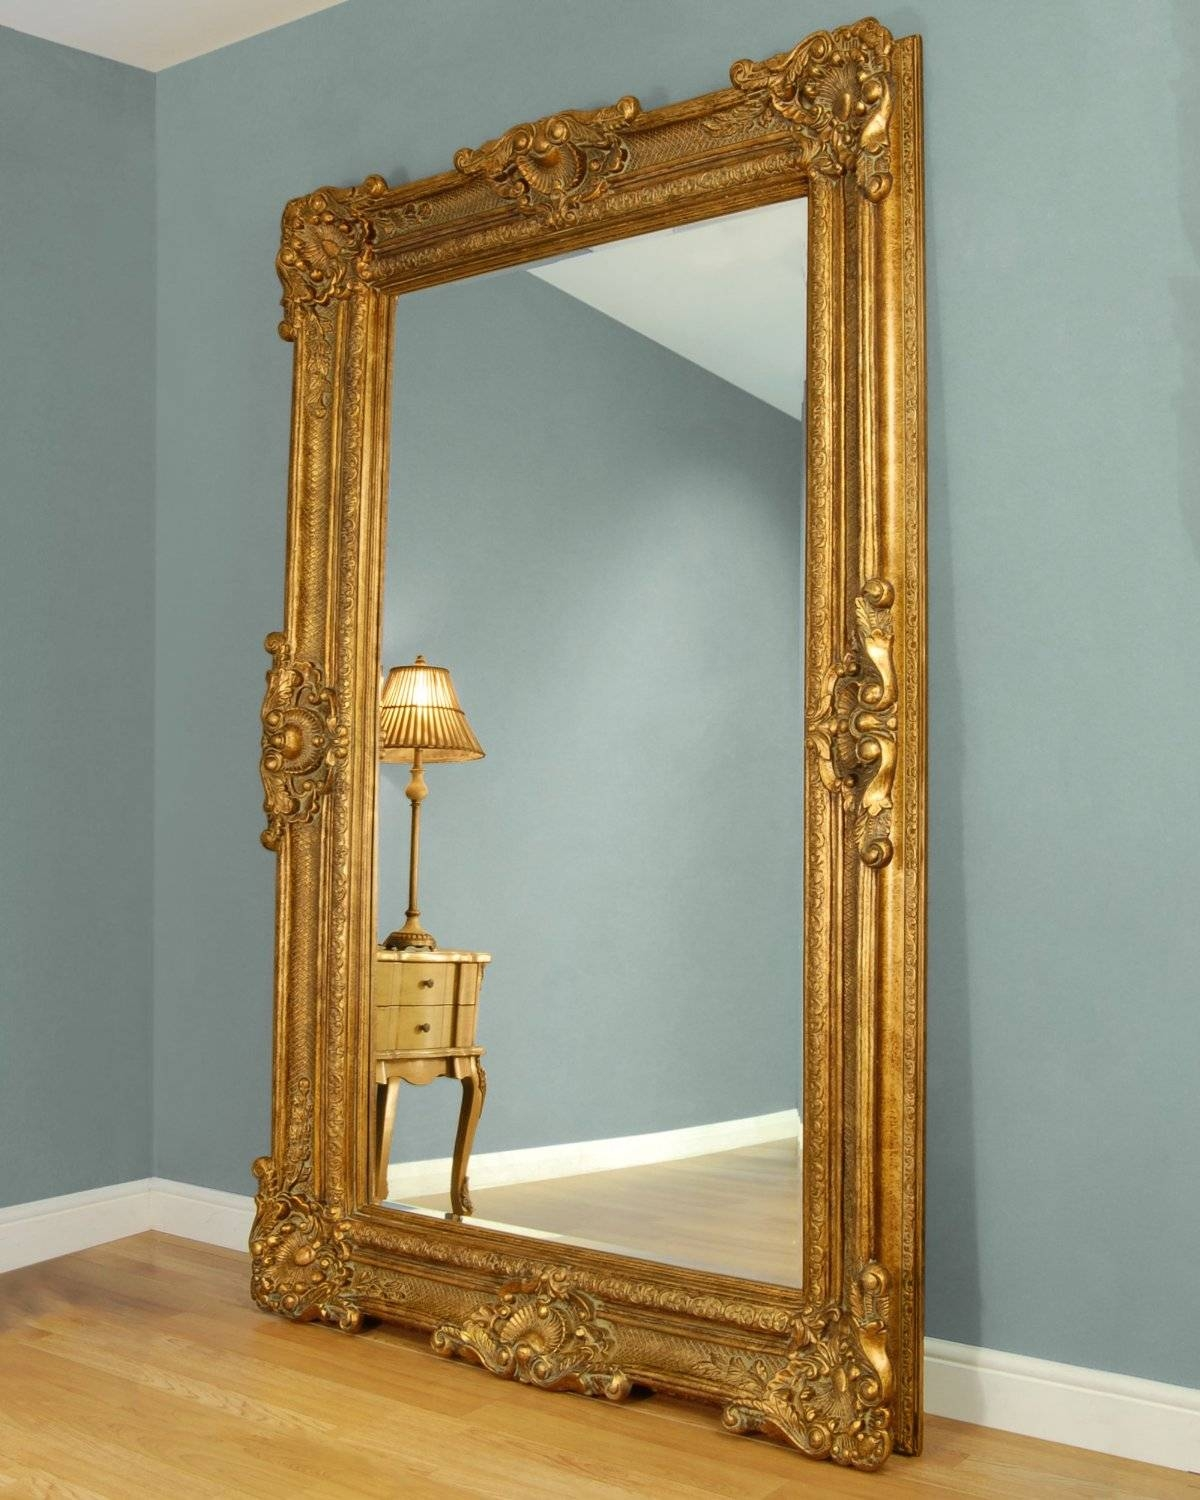 Big Gold Framed Mirrors | Vanity Decoration intended for Big Ornate Mirrors (Image 4 of 15)